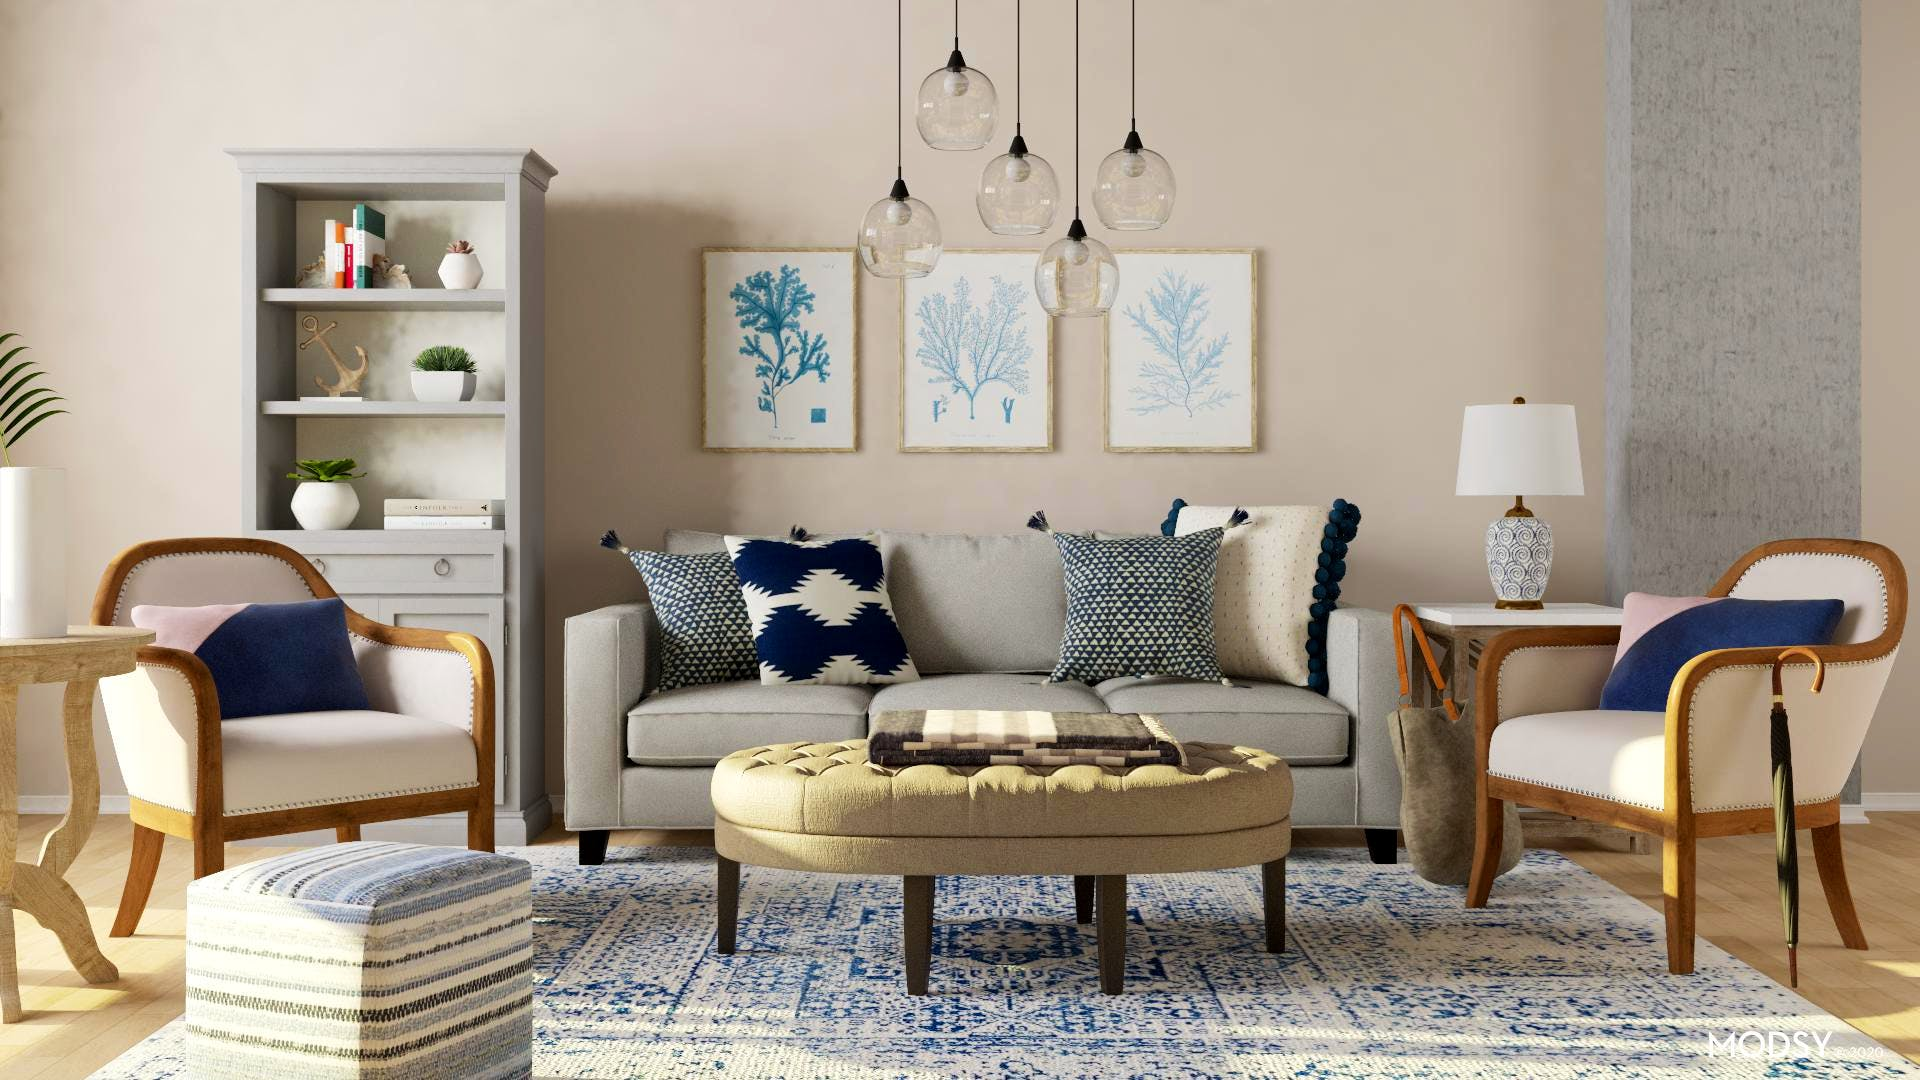 Transitional Living Room Design Ideas and Styles from Modsy Designers